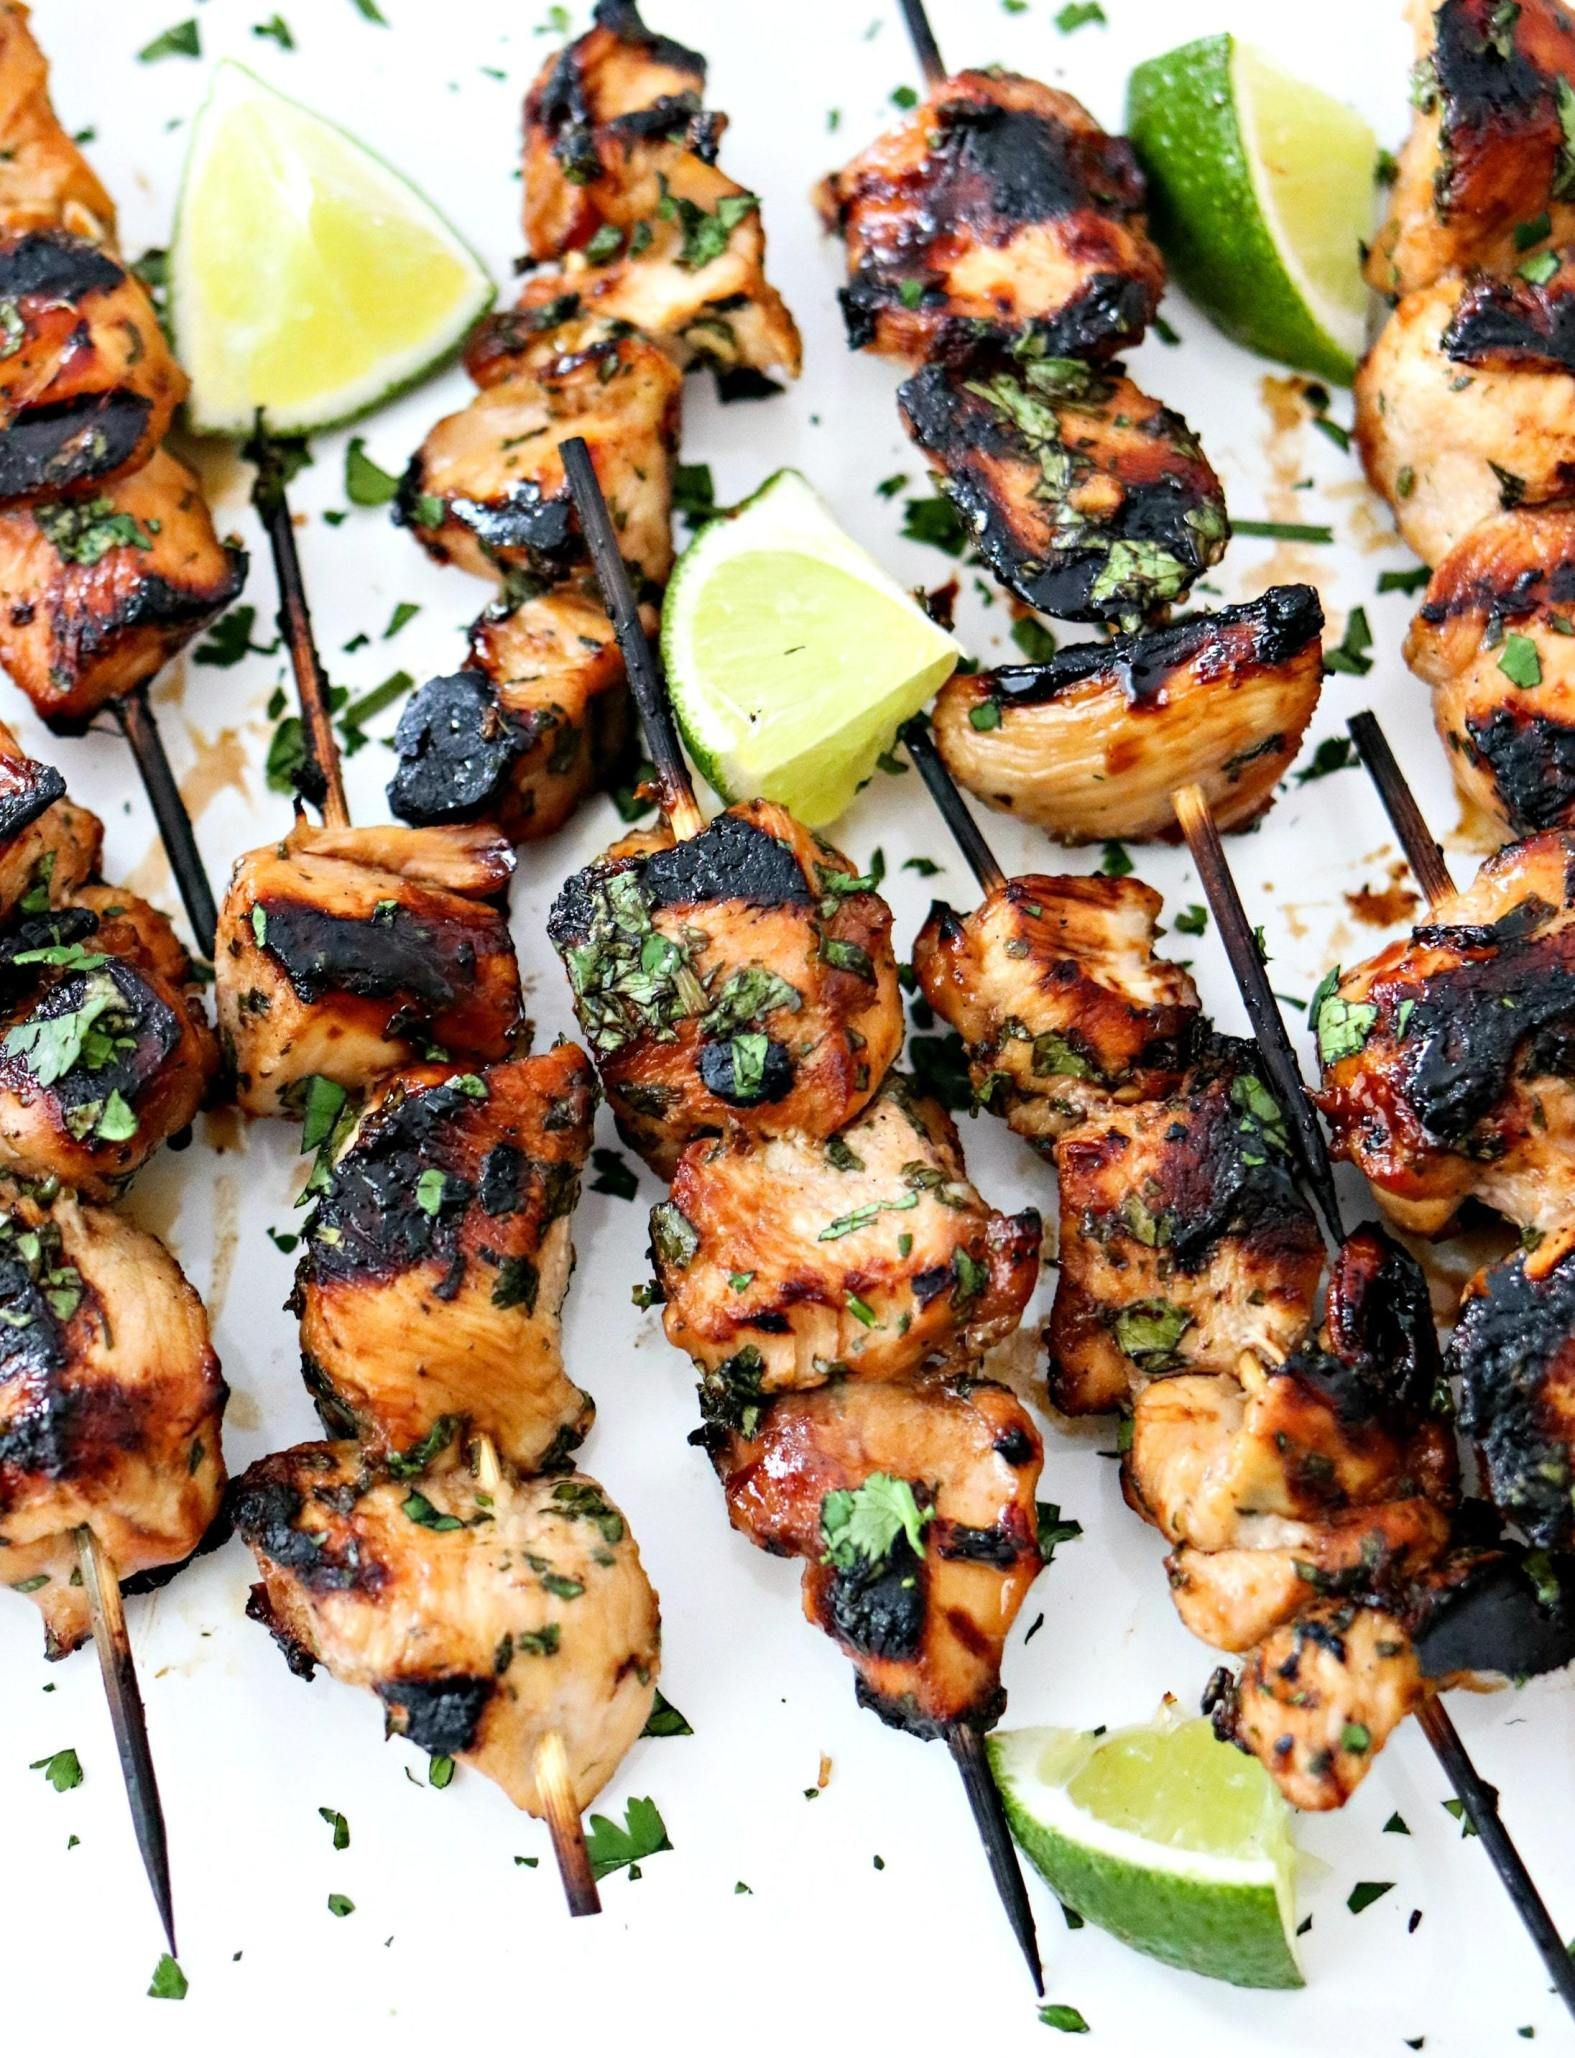 Grilled Cilantro Lime Chicken Skewers – This is the most tender and most flavorful chicken you will ever make! The chicken gets marinated in a honey, lime, cilantro, garlic, and soy sauce marinade for a few hours, skewered, and then grilled. Super easy and always a hit! Perfect for serving a crowd. #honeylimechicken Grilled Cilantro Lime Chicken Skewers – This is the most tender and most flavorful chicken you will ever make! The chicken gets marinated in a honey, lime, cilantro, garlic, and #honeylimechicken